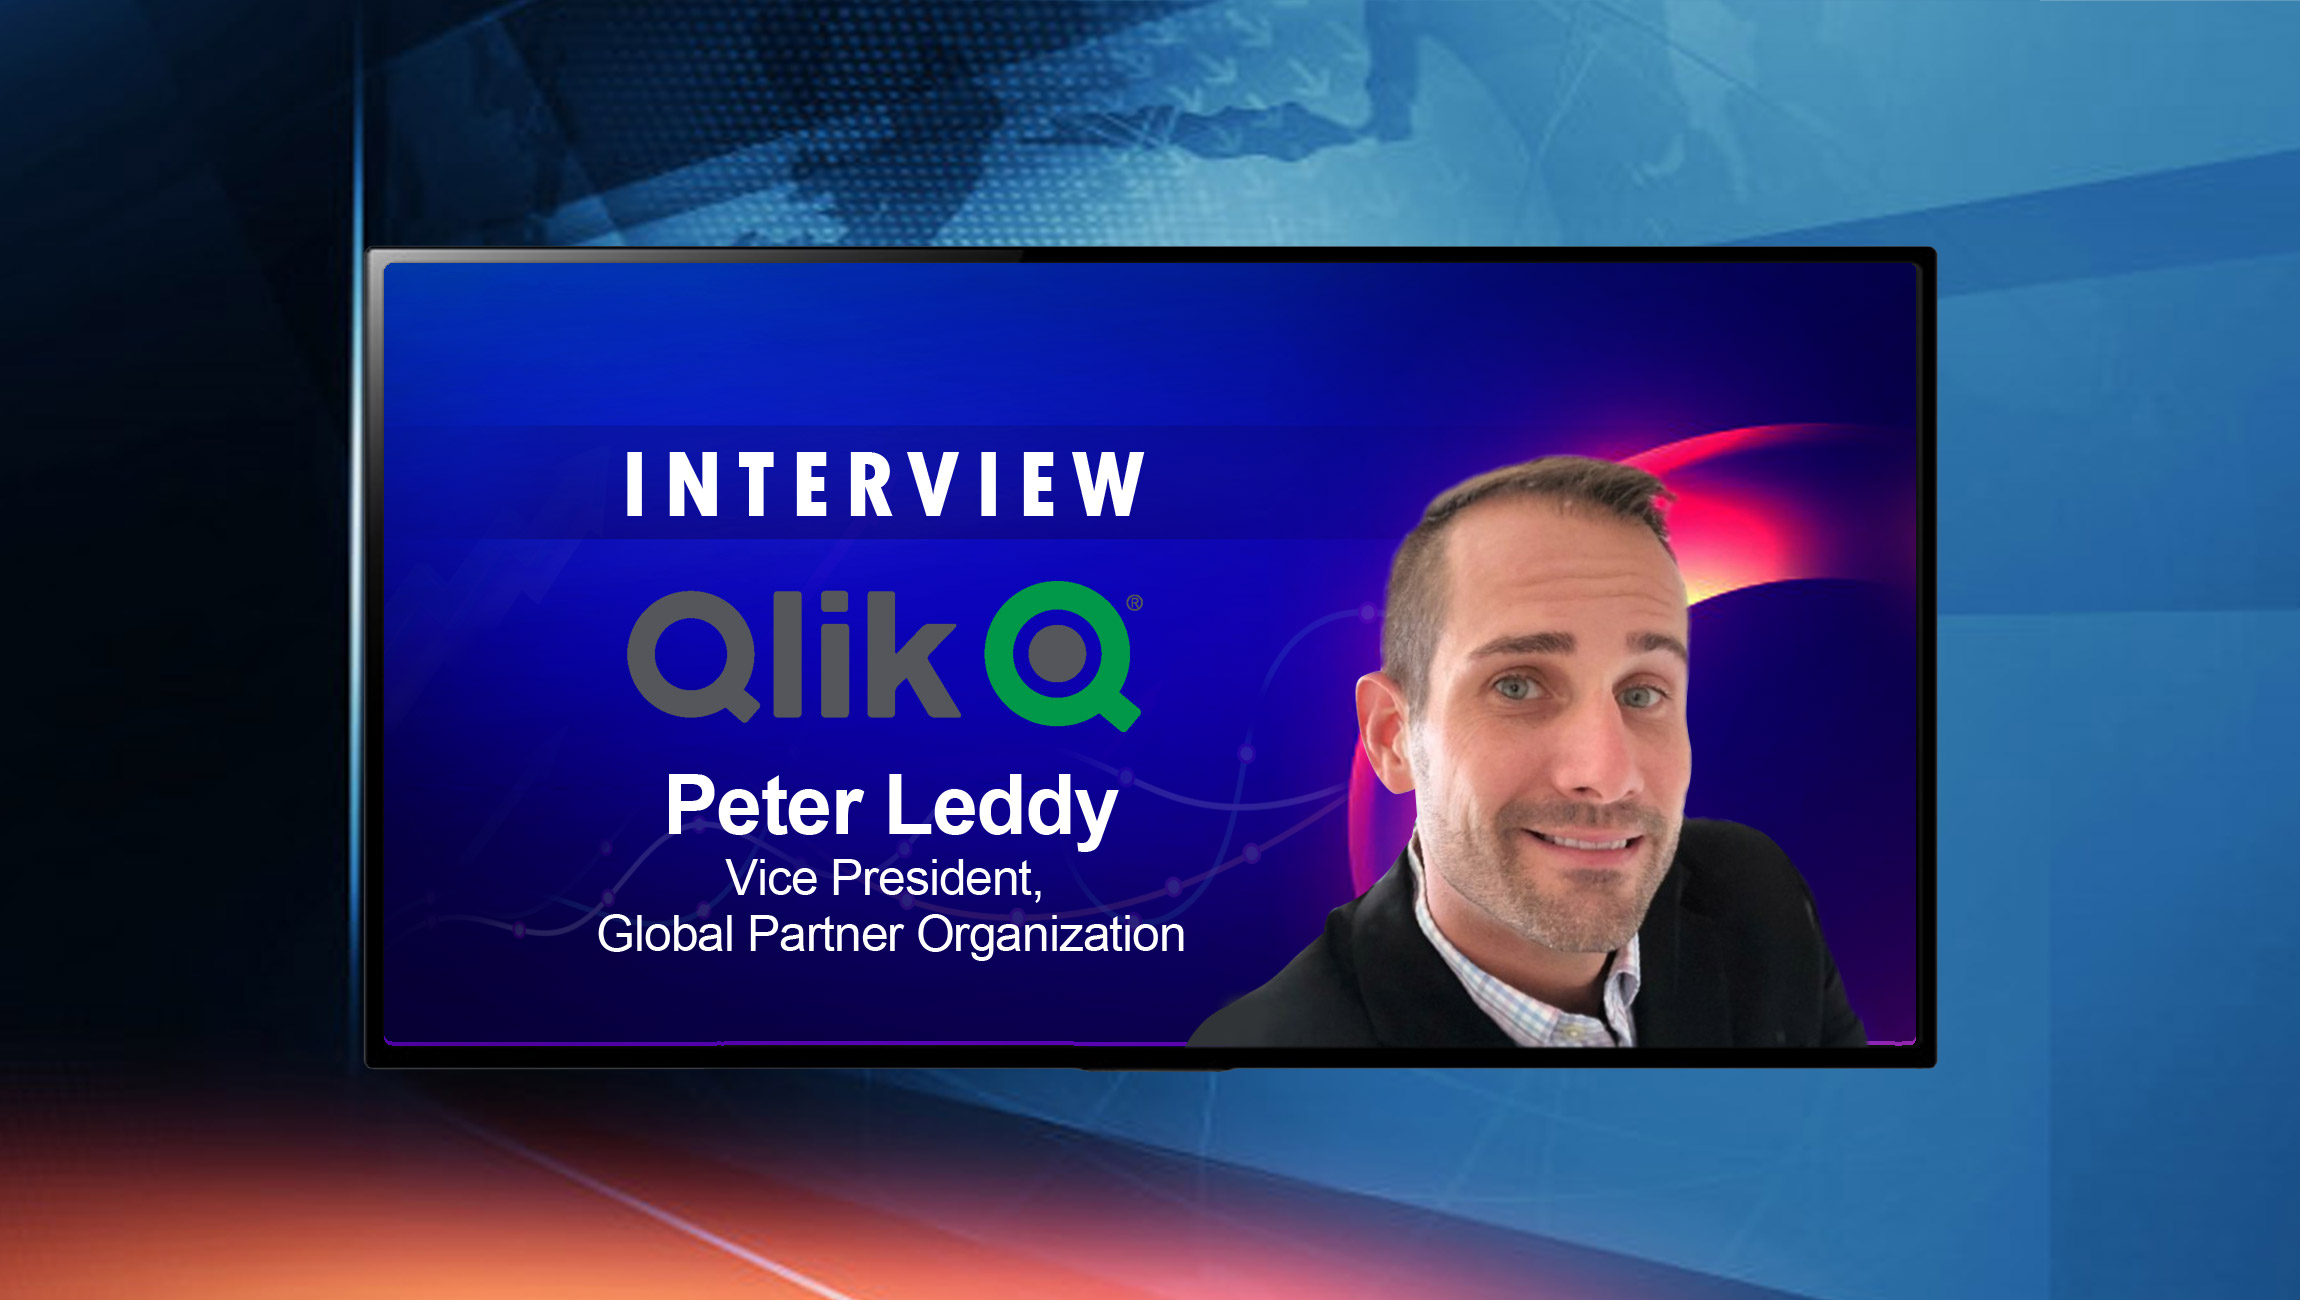 SalesTechStar Interview with Peter Leddy, Vice President, Global Partner Organization at Qlik